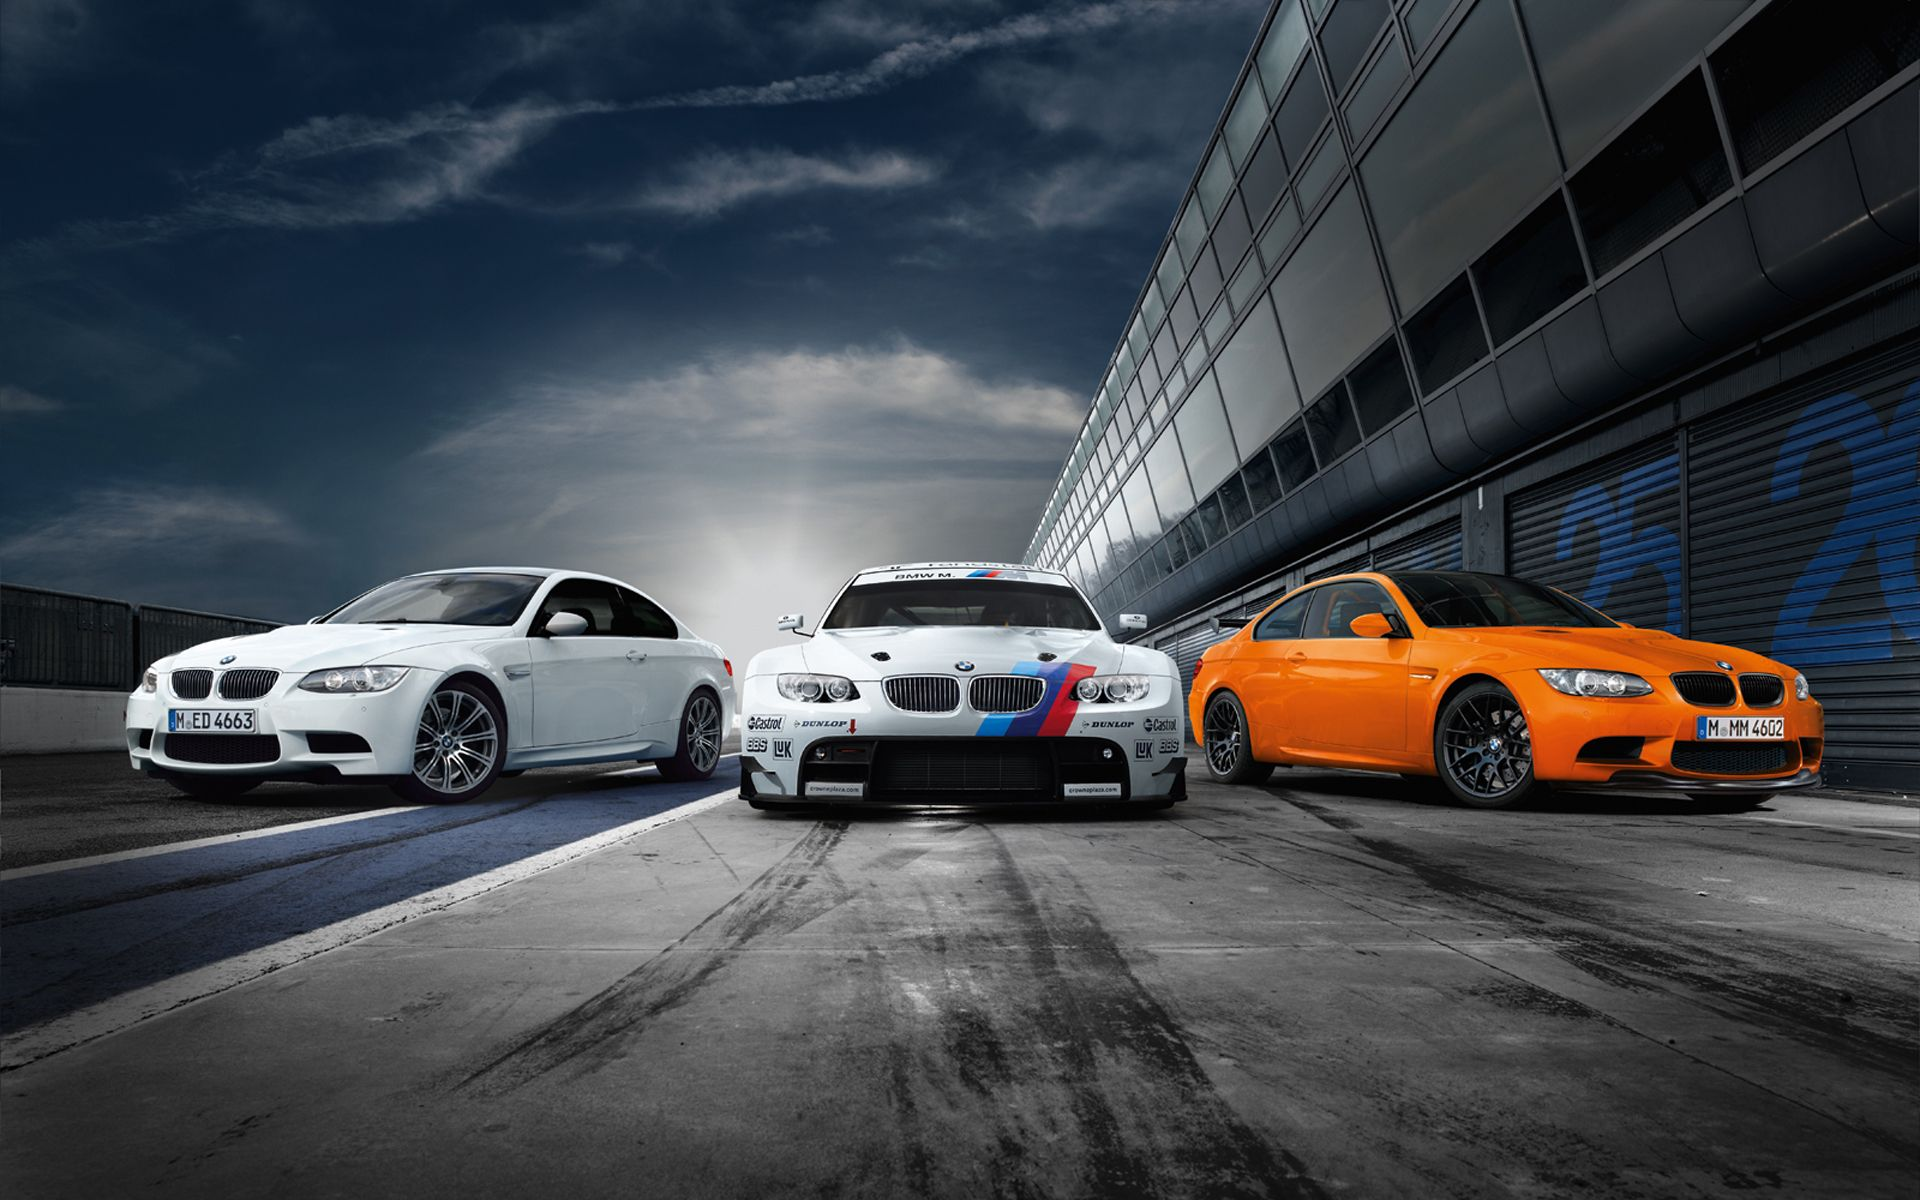 Pin By Guy Robidoux On Automotive Bmw M3 Wallpaper Super Car Racing Bmw M3